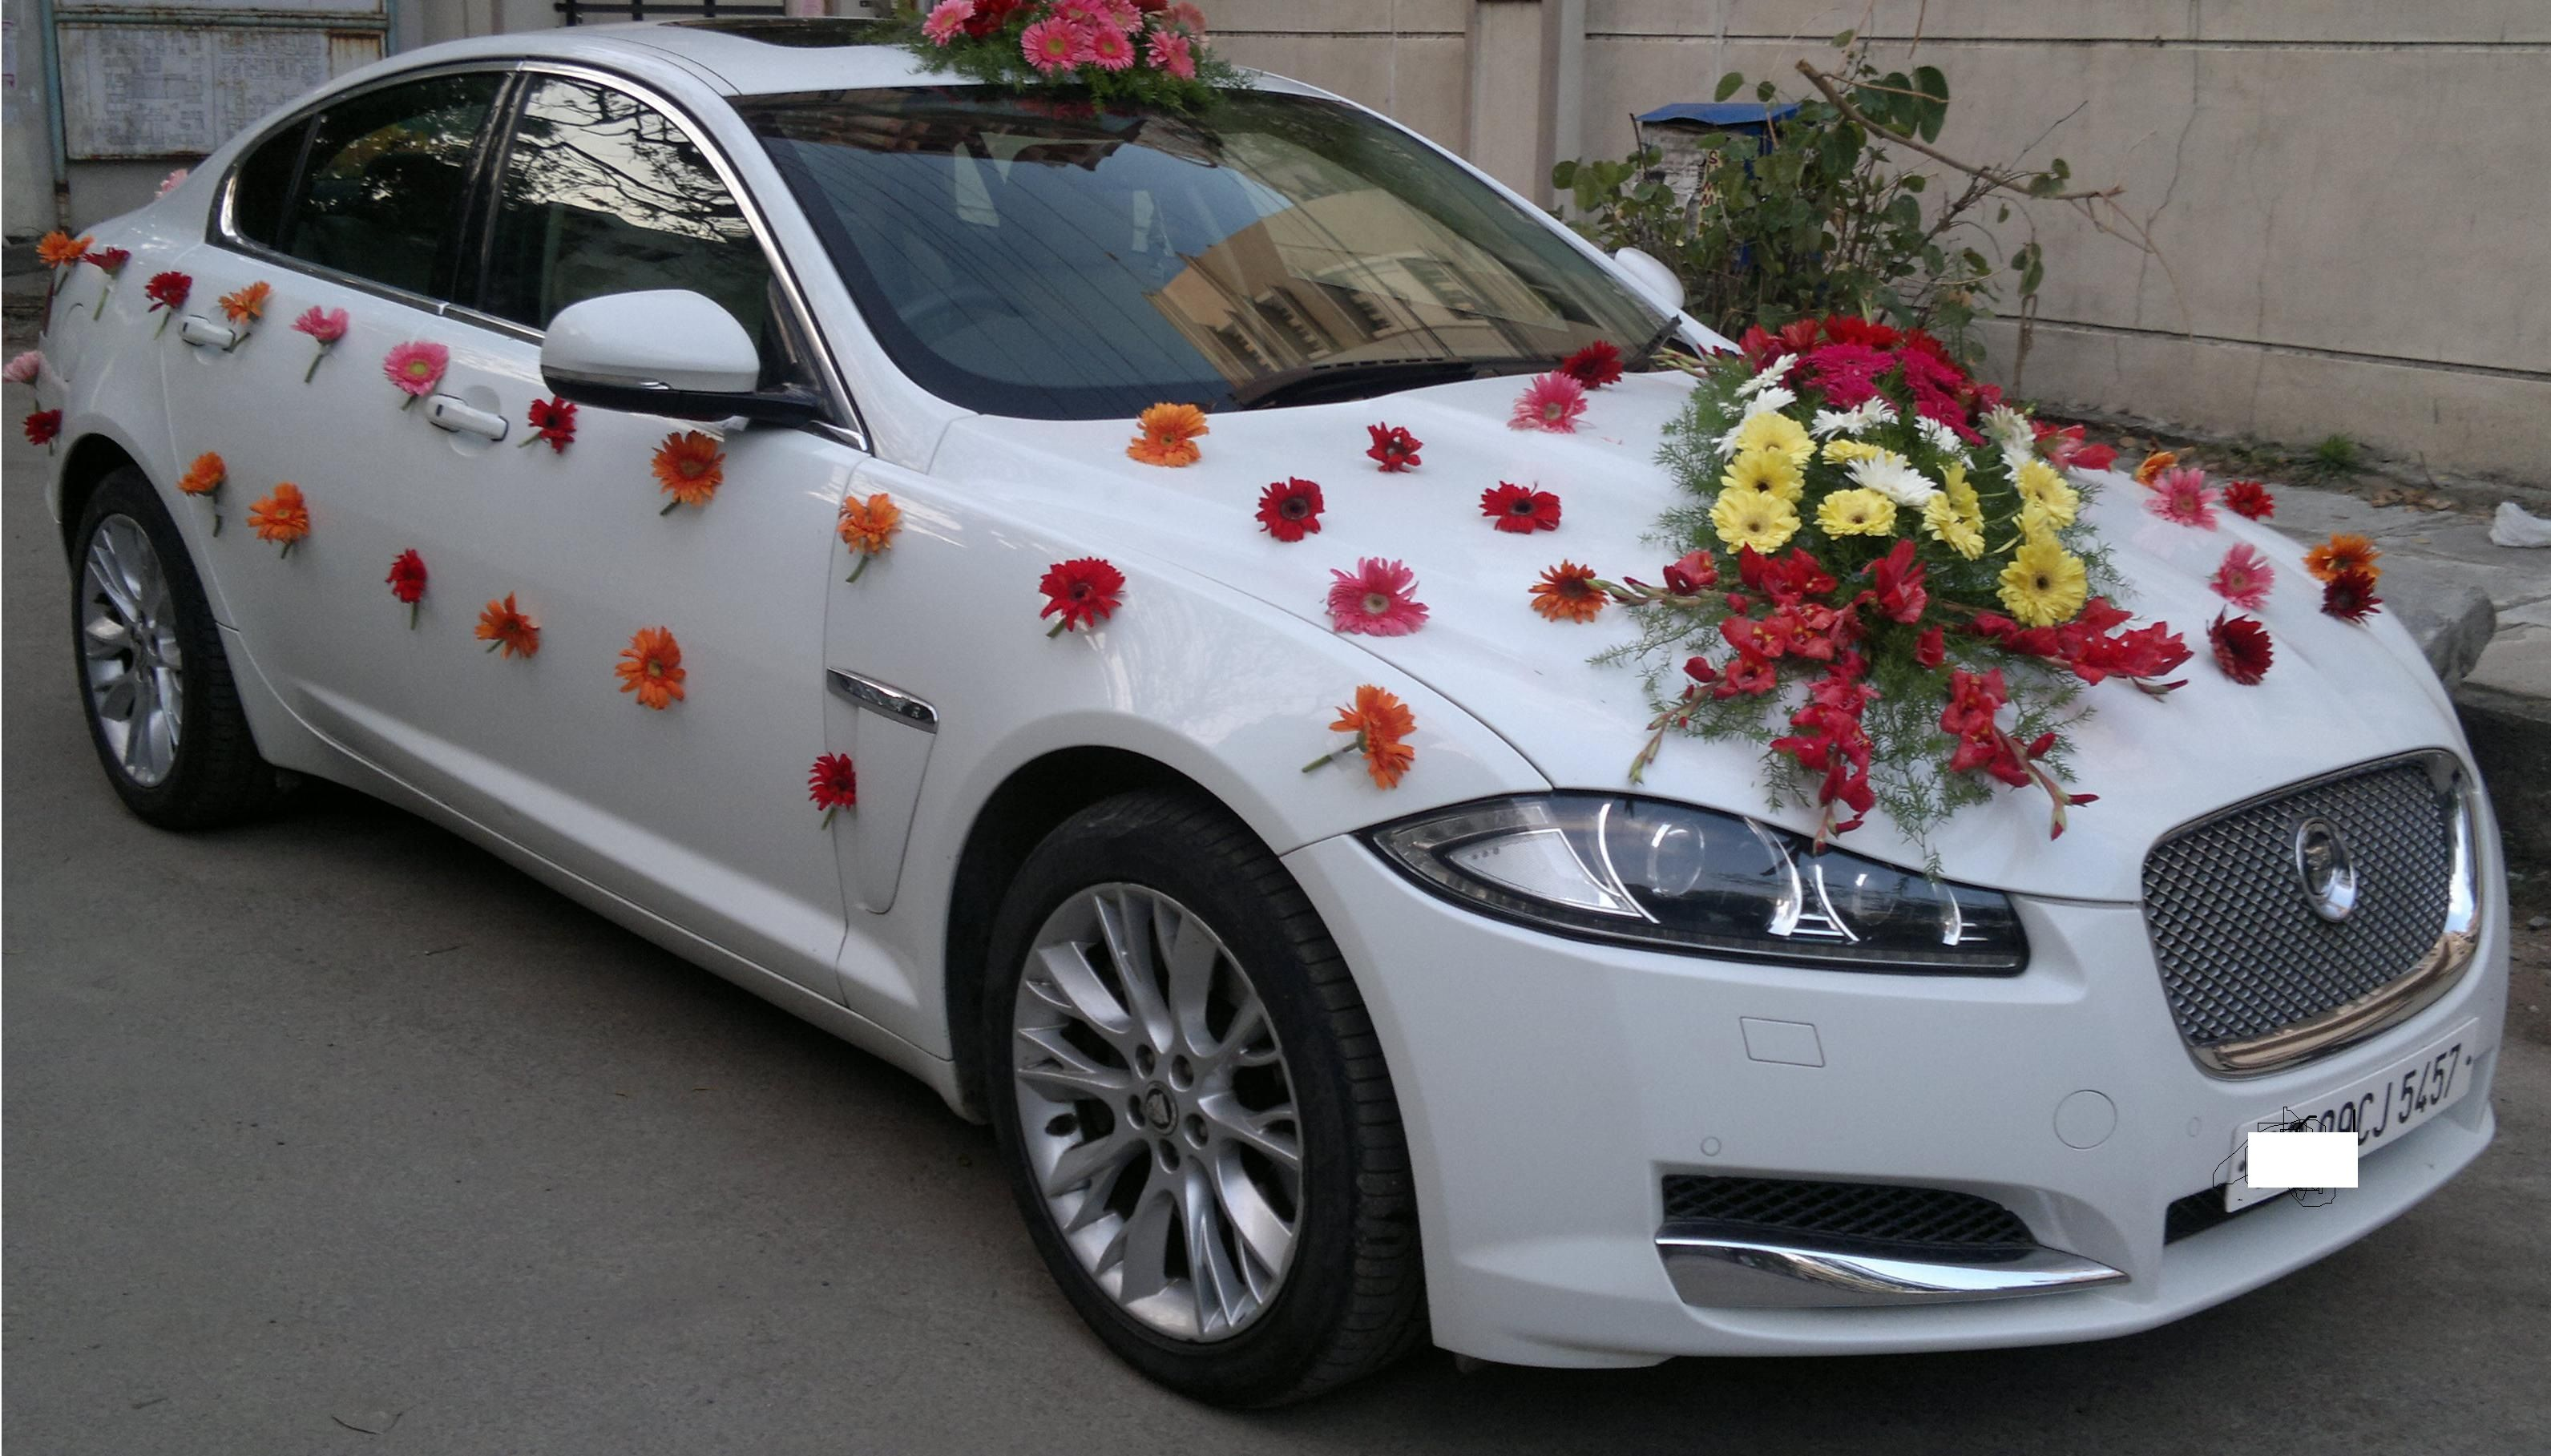 Inspiration Car Decoration For Wedding With Pressed Flowers On Every